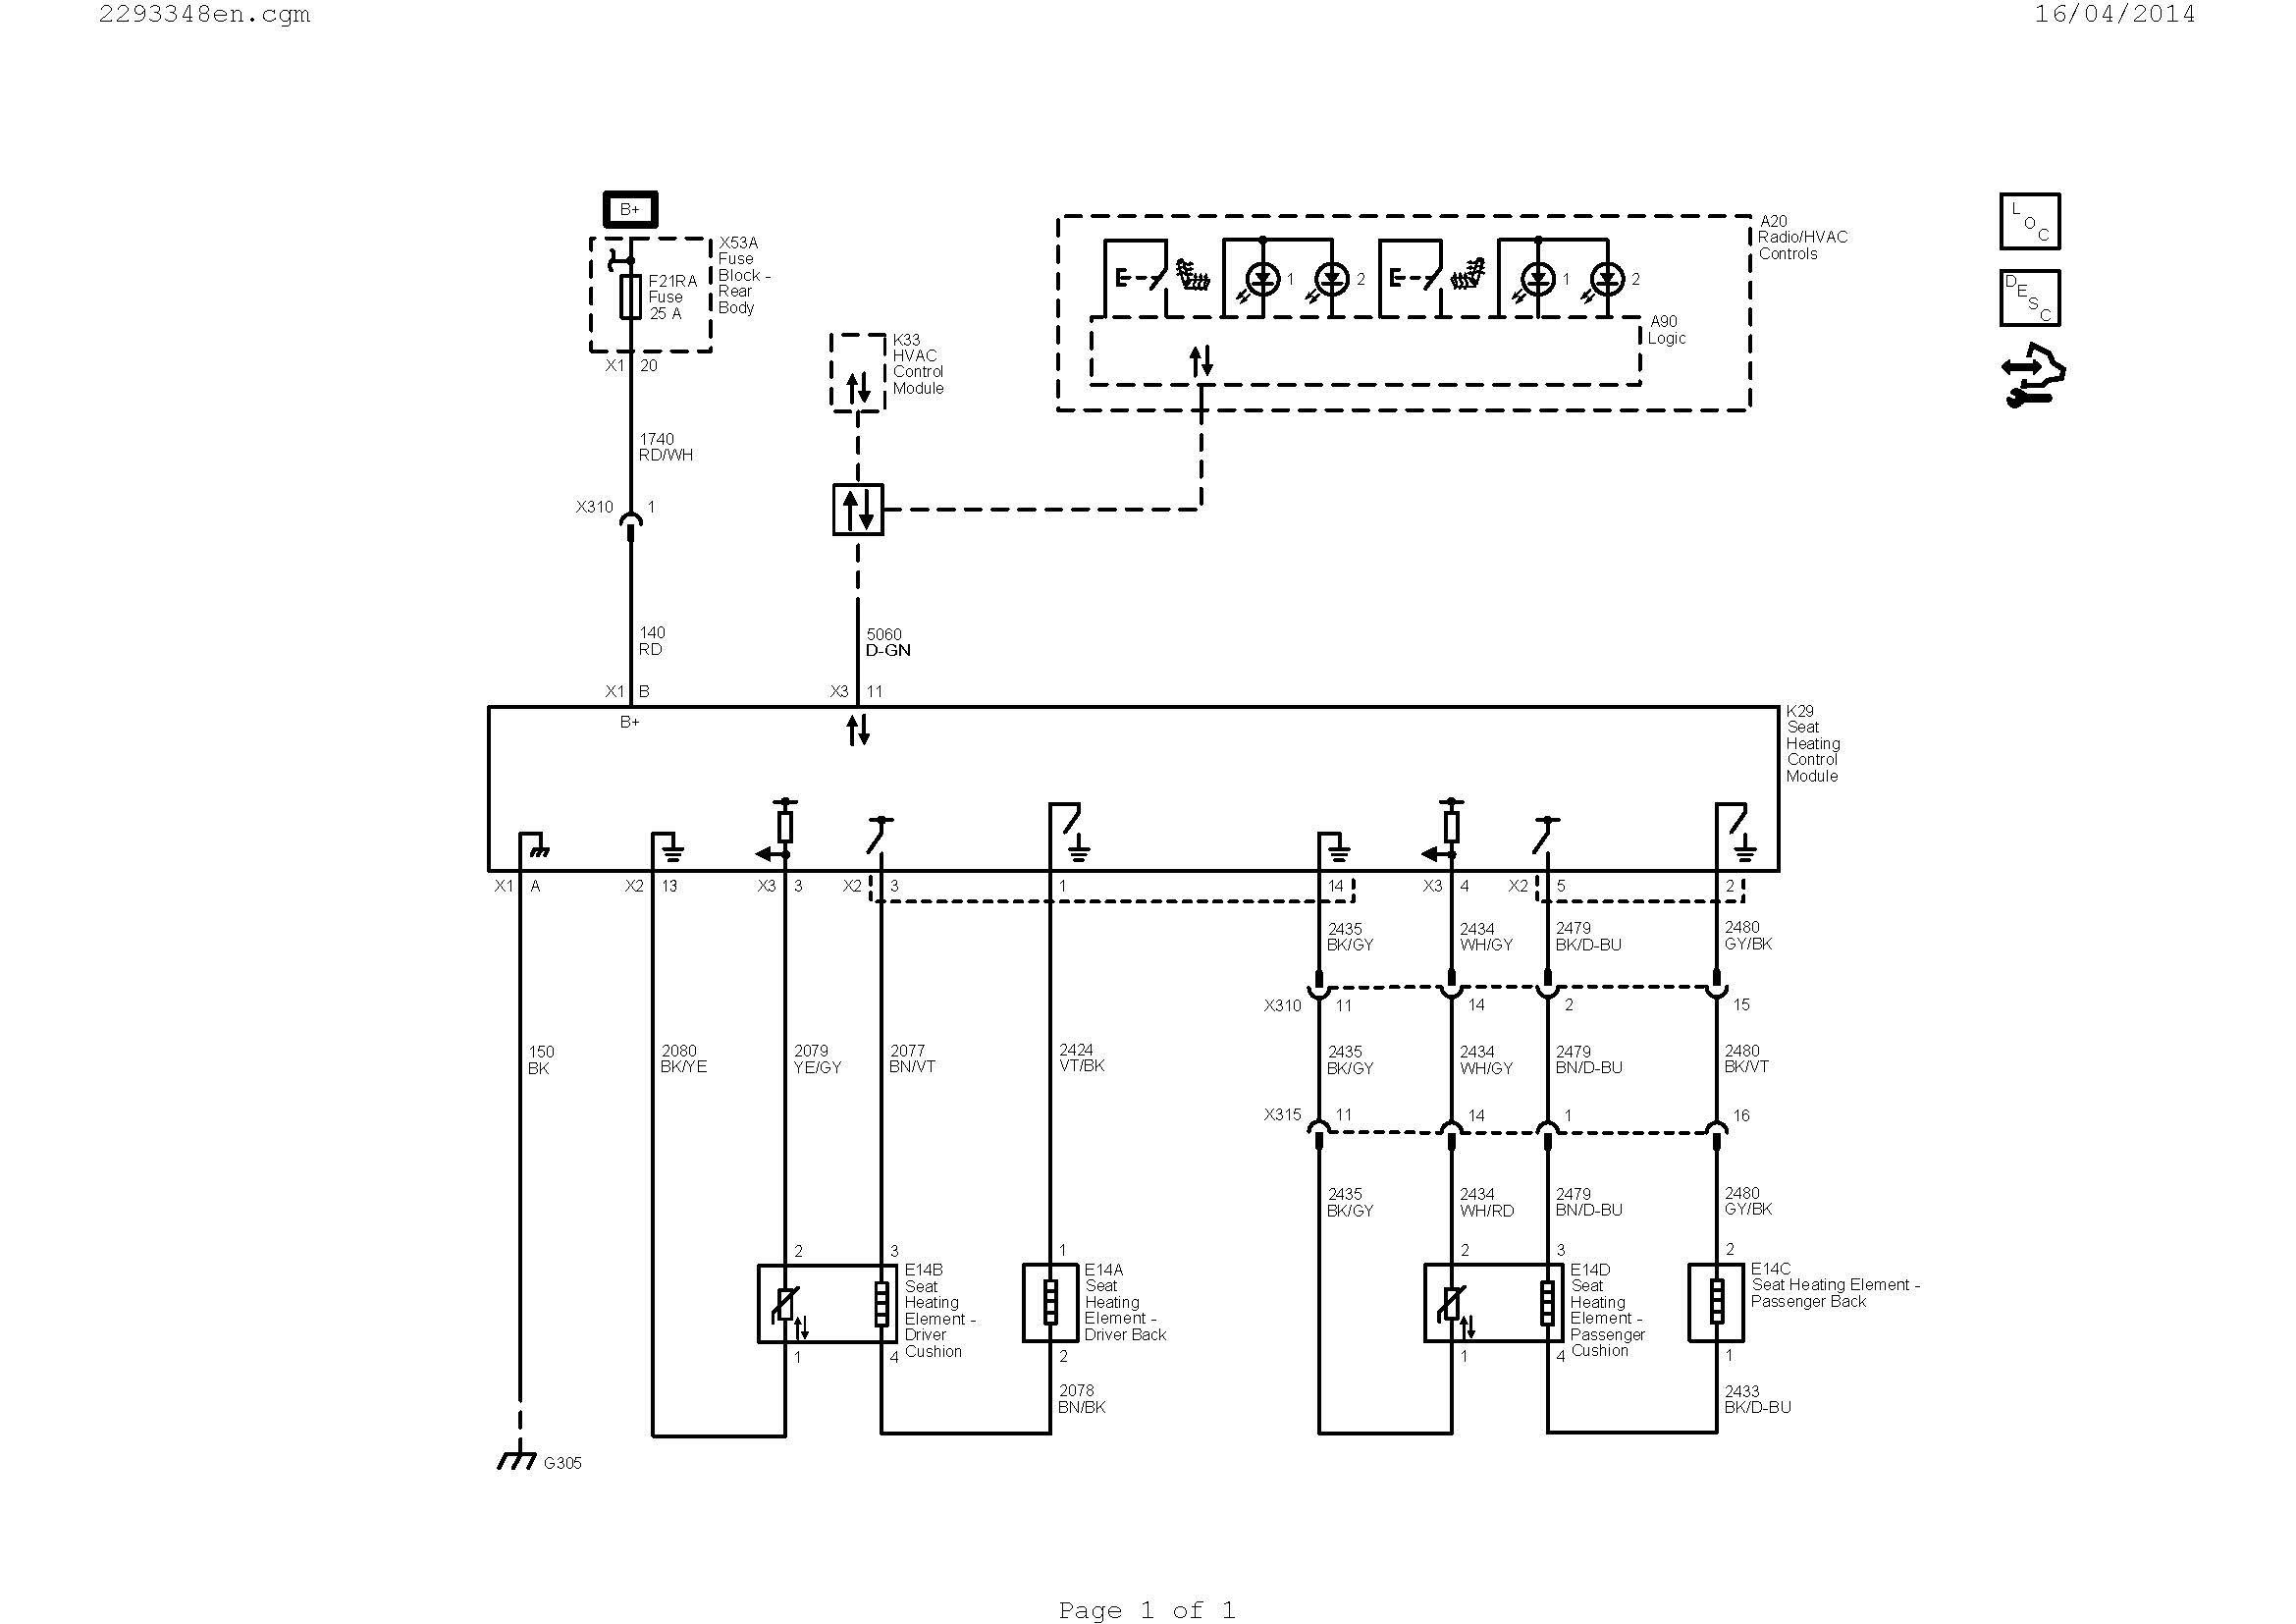 Basic Motorcycle Engine Diagram Mechanical Engineering Diagrams Hvac Diagram Best Hvac Diagram 0d Of Basic Motorcycle Engine Diagram